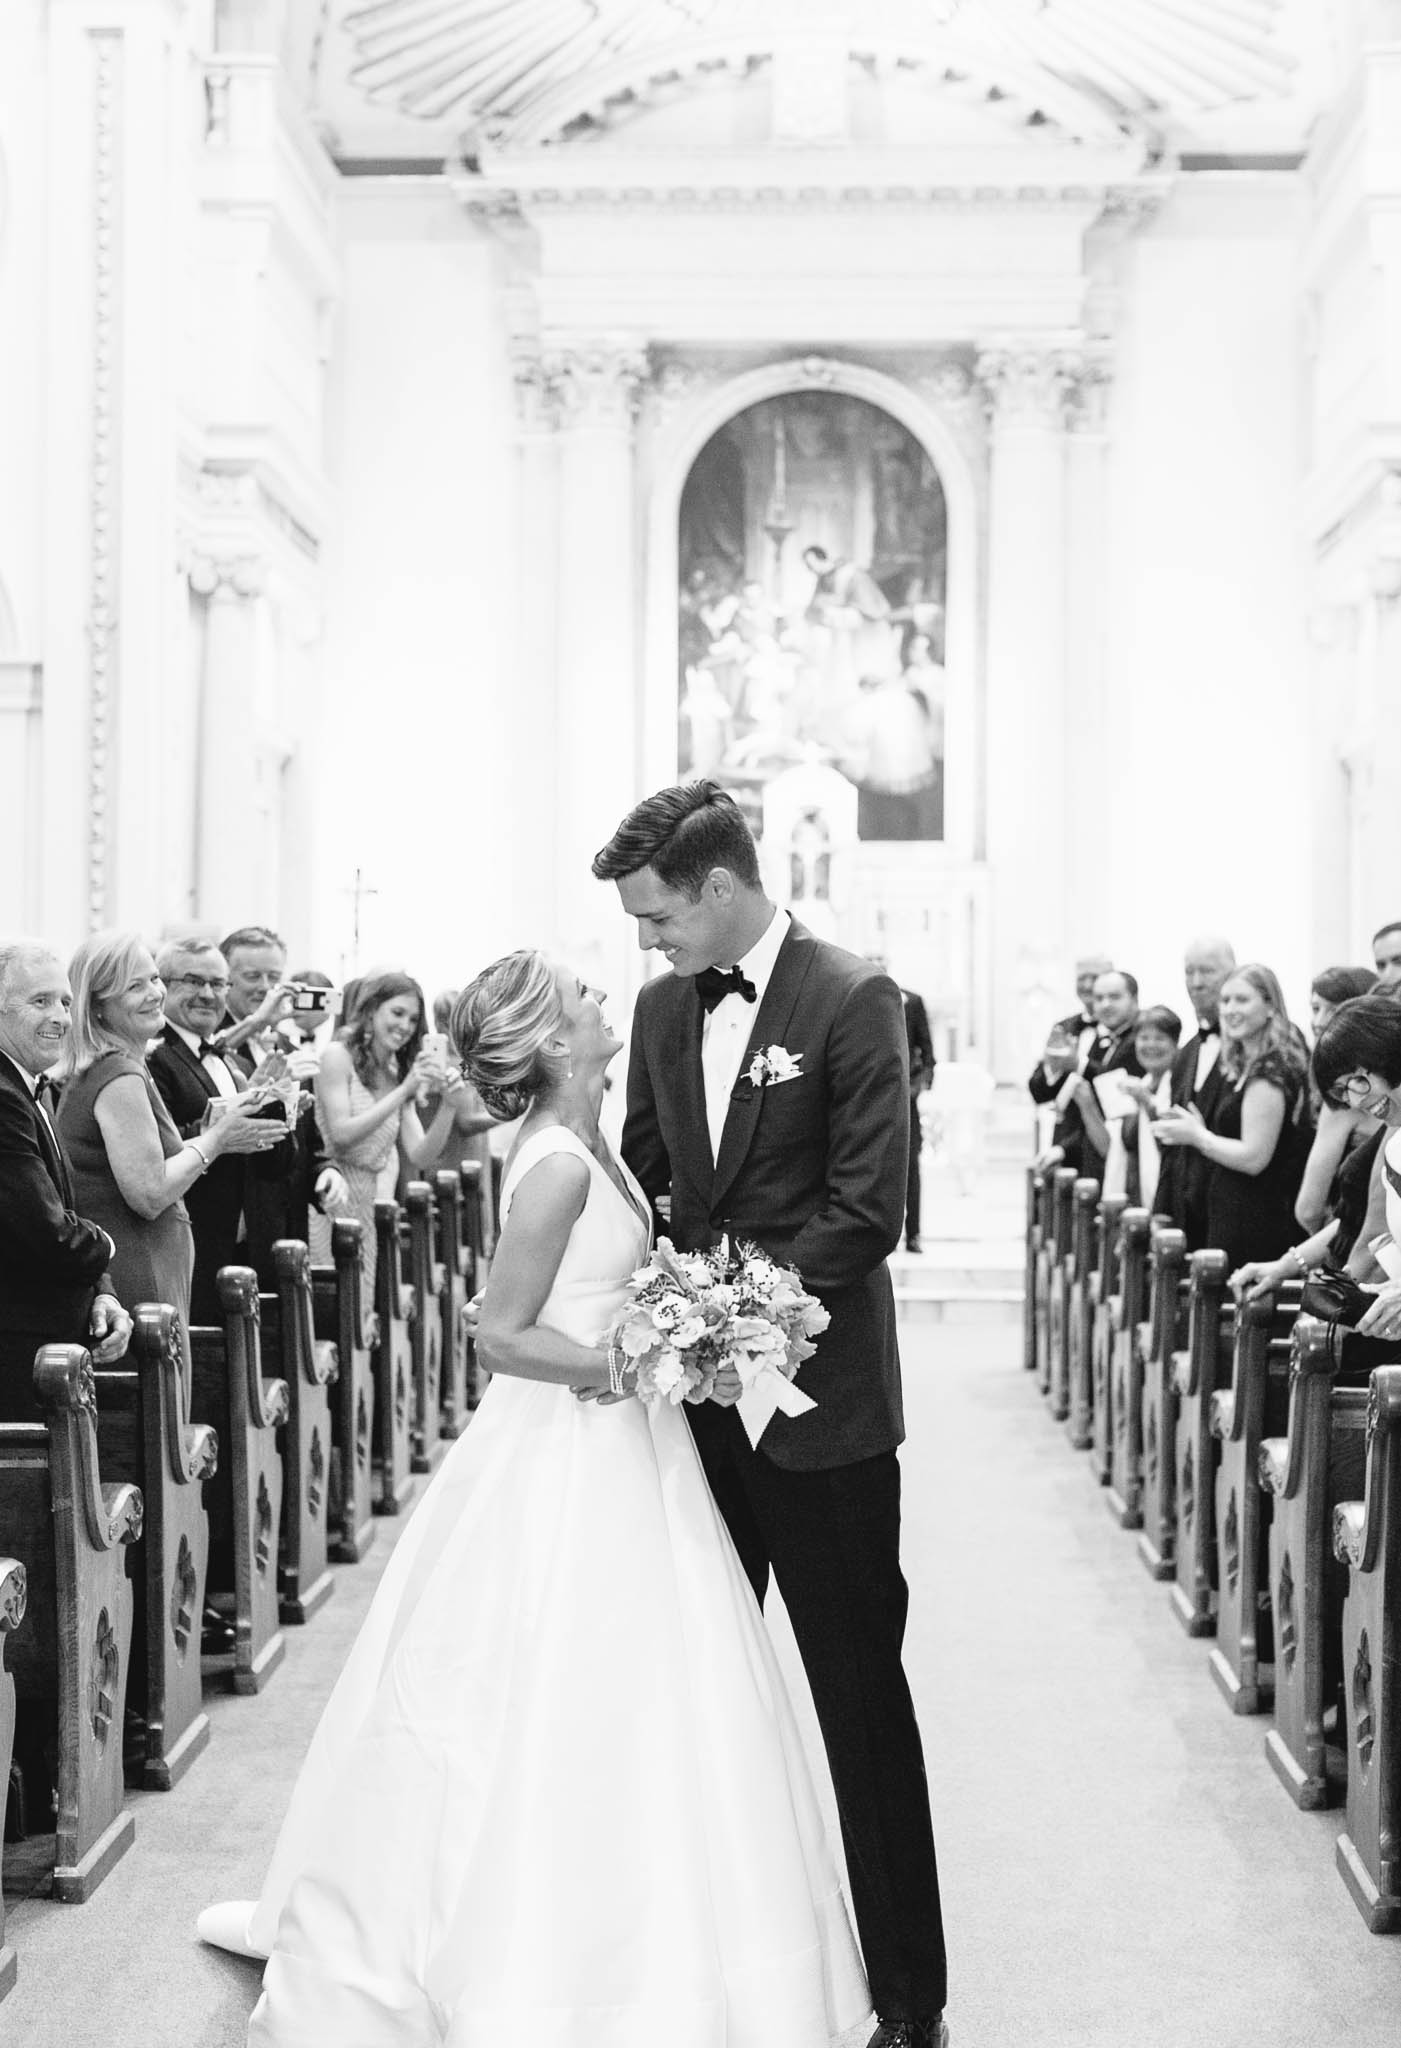 bride and groom standing in church wedding aisle